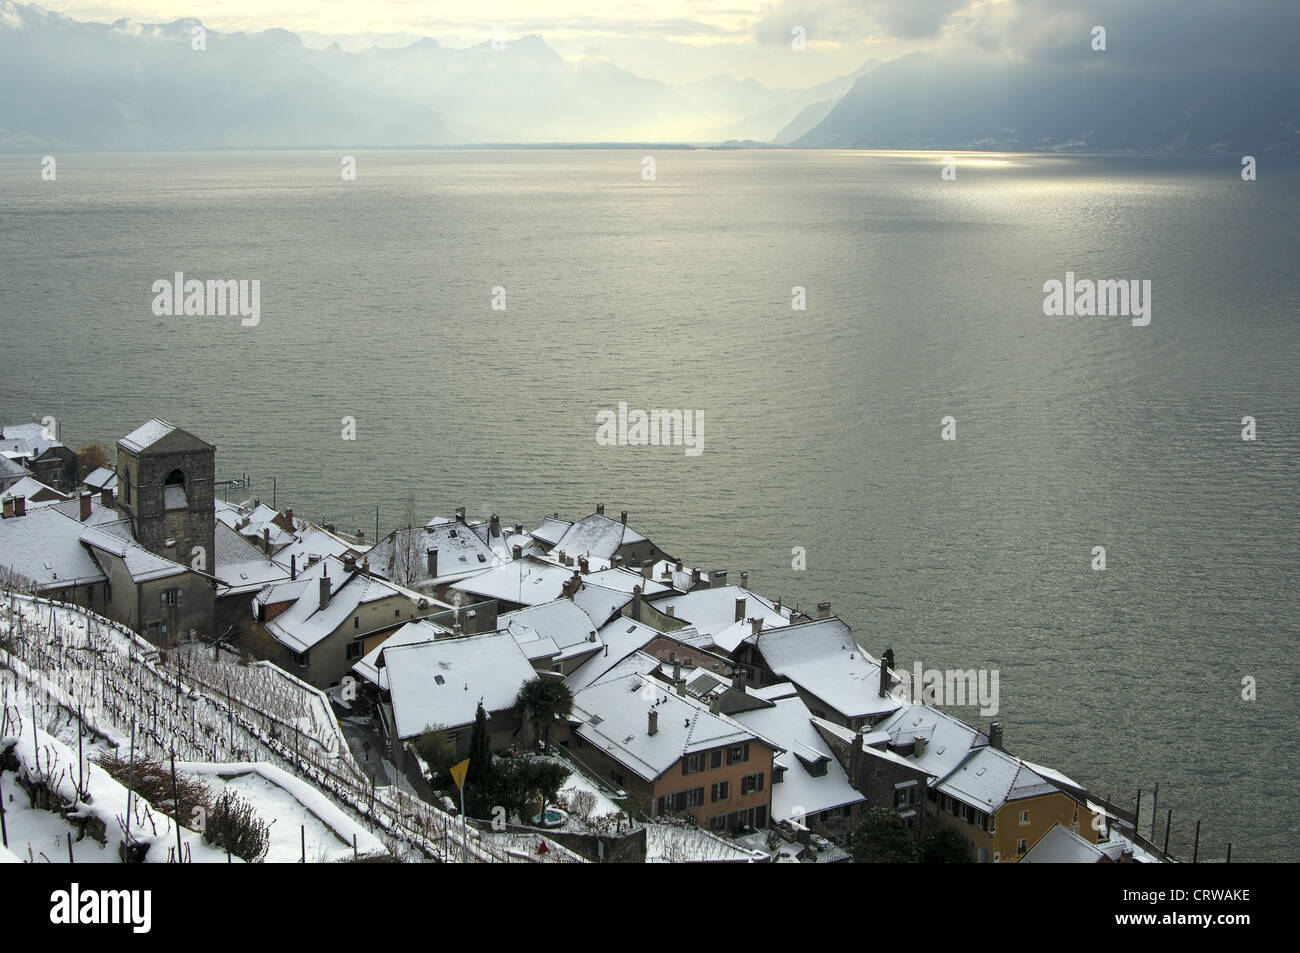 Saint-Saphorin on Lac Leman, Switzerland - Stock Image